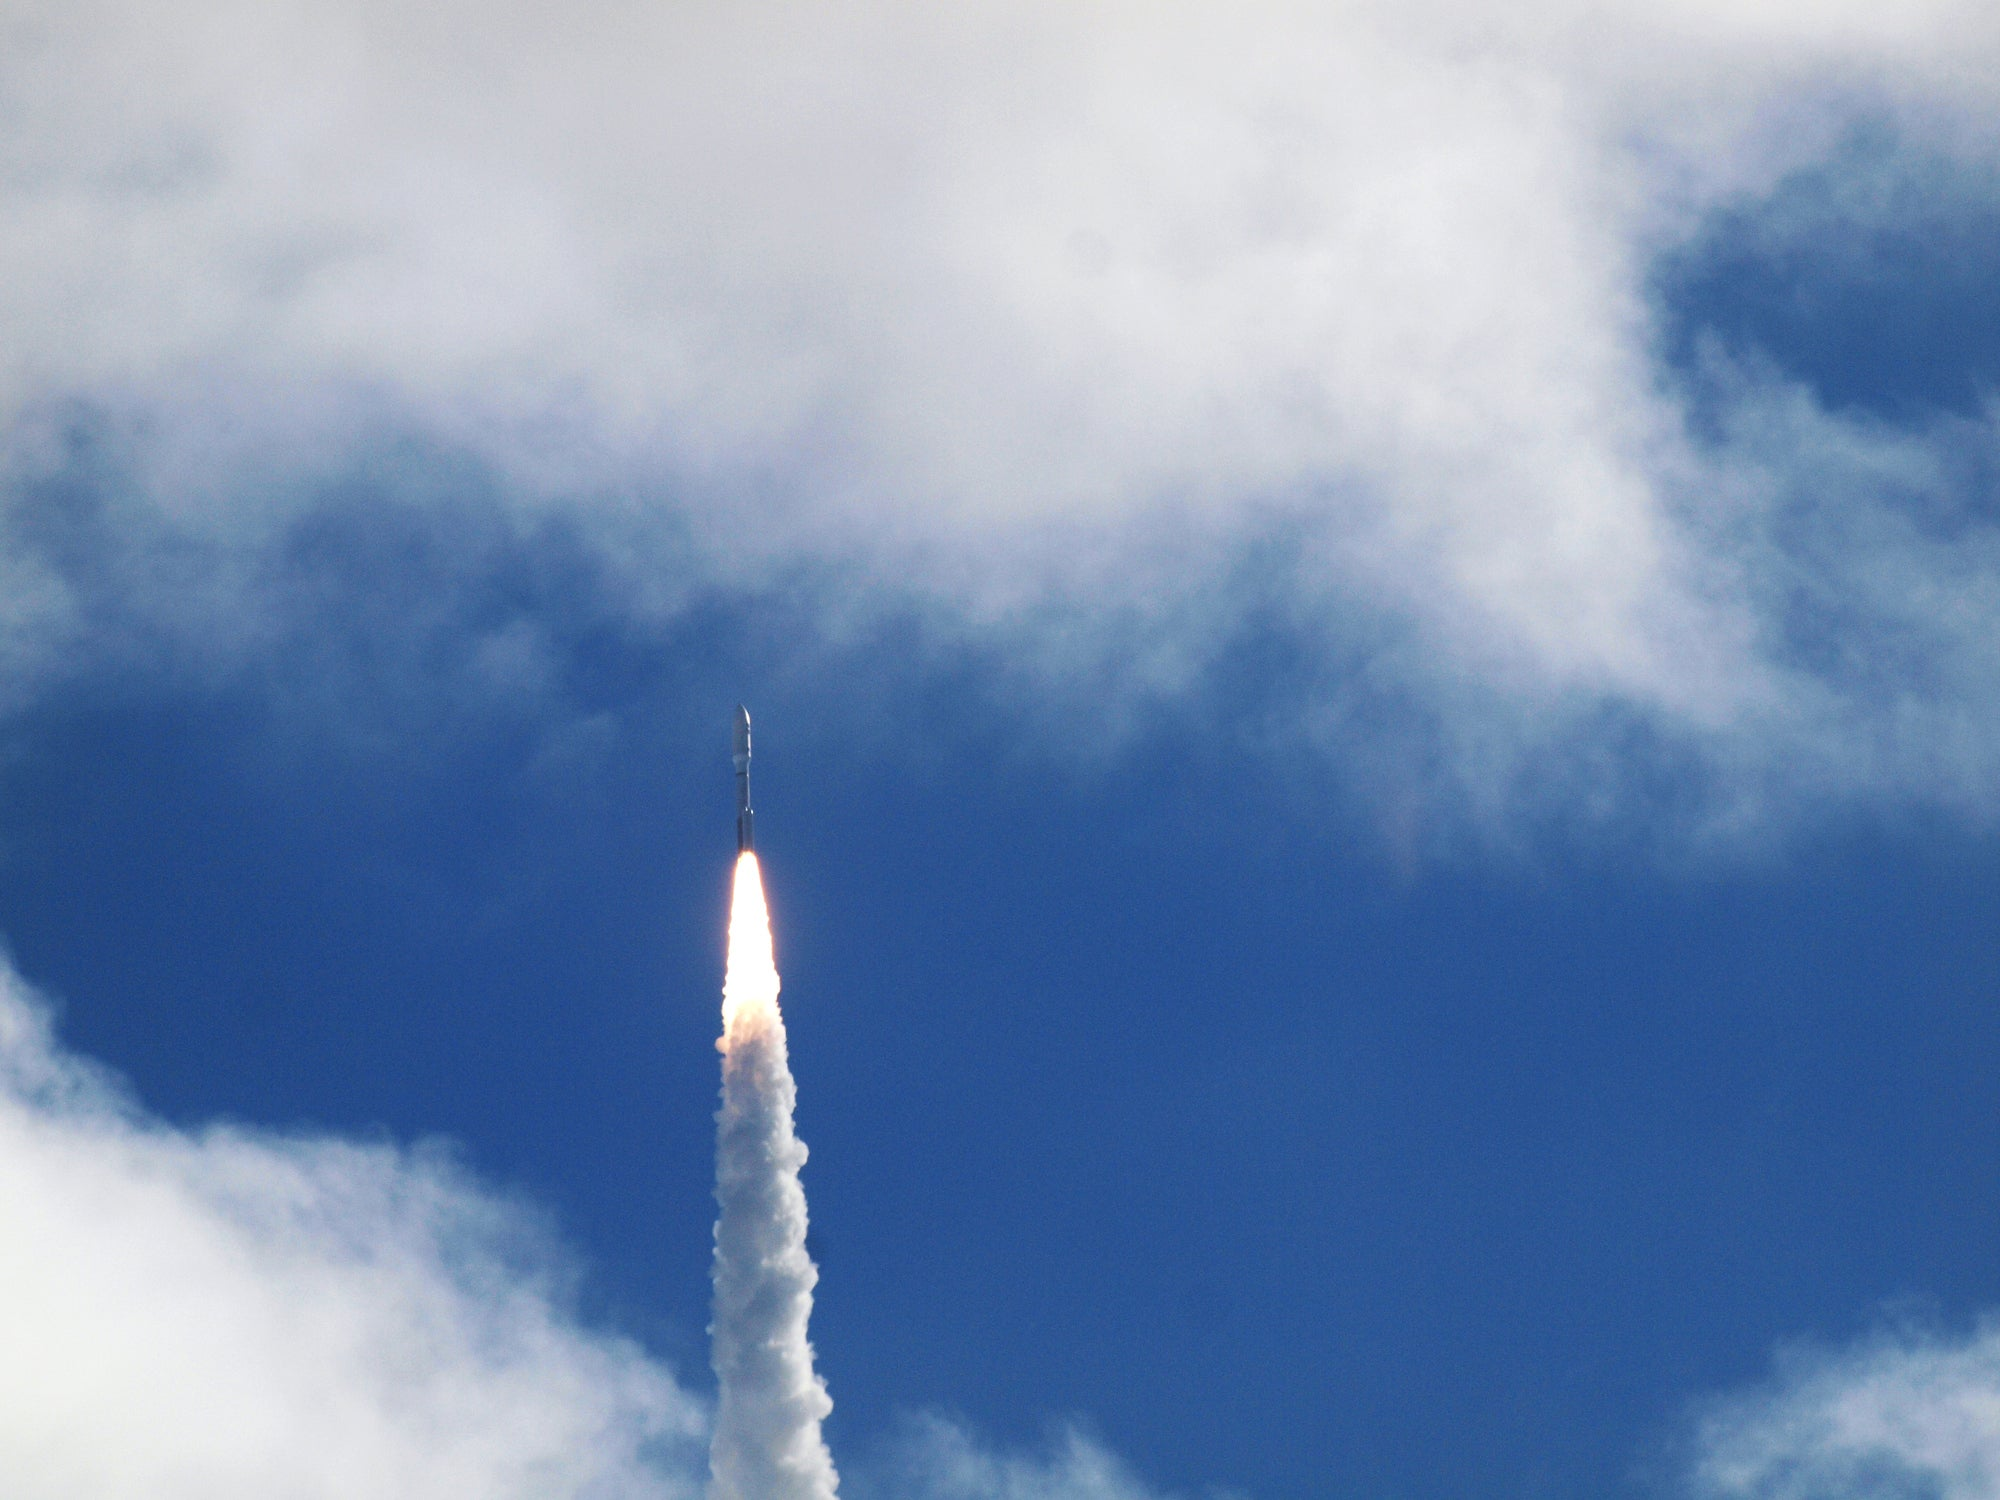 Why Did Google Invest $1 Billion in SpaceX? | The Motley Fool